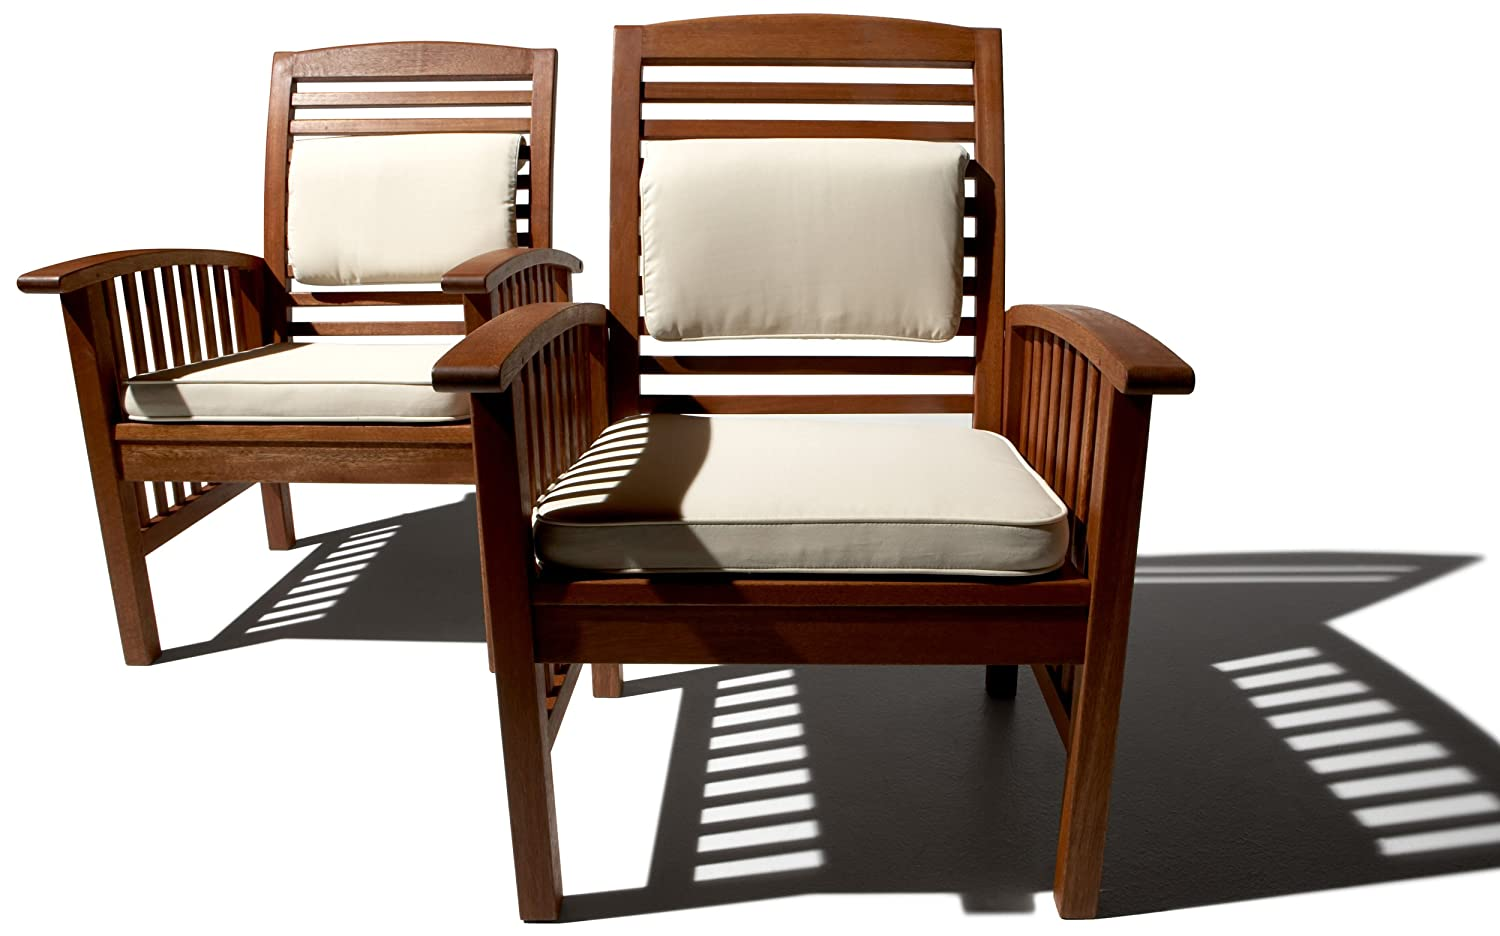 Strathwood Gibranta All-Weather Hardwood Arm Chair, Set of 2